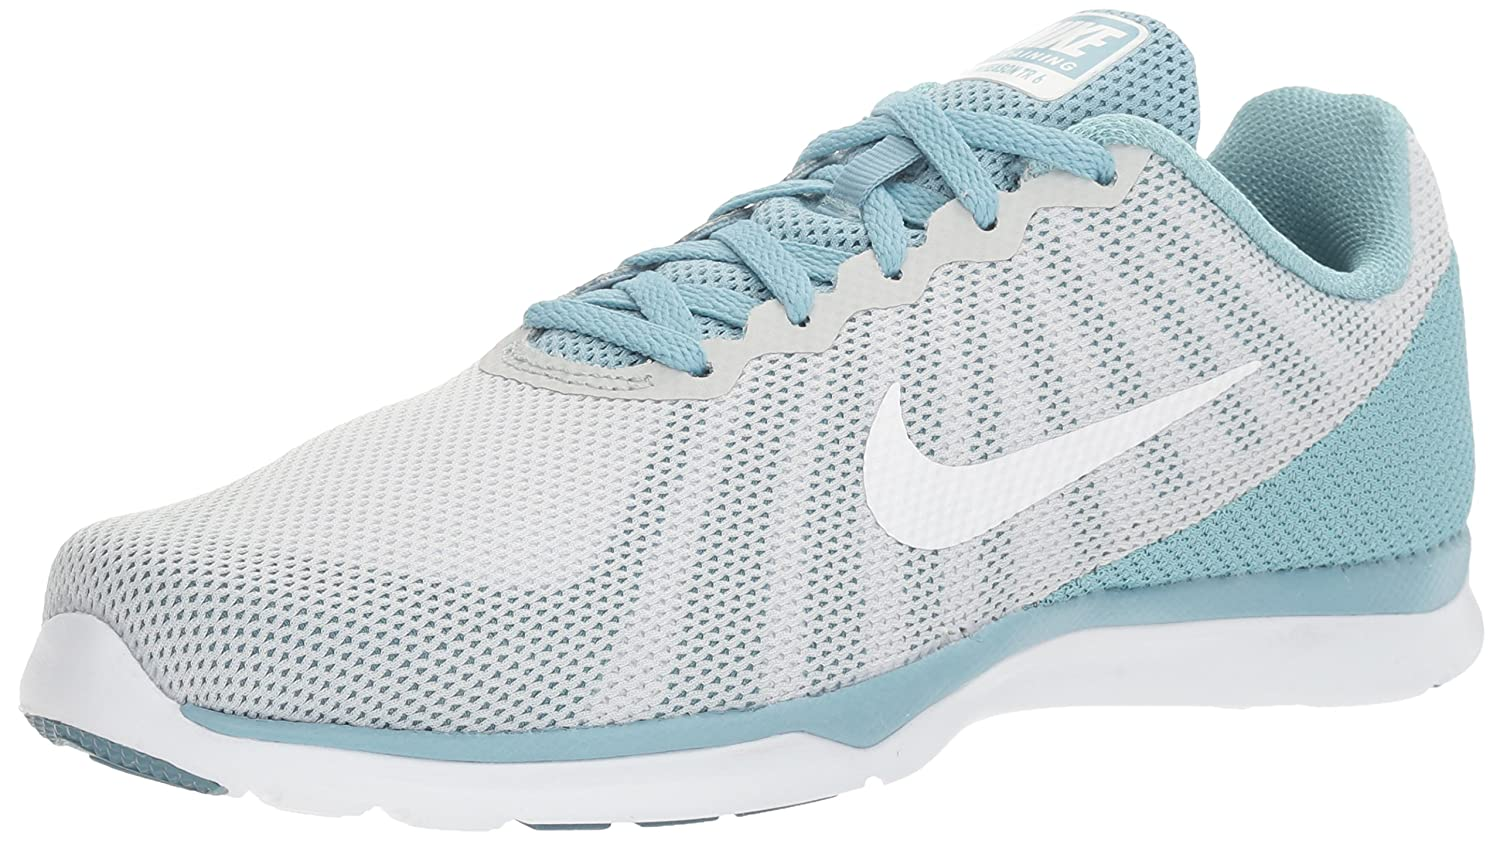 NIKE Women's in-Season TR 6 Cross Training Shoe B01FTKWGOS 7.5 B(M) US|Pure Platinum/White/Mica Blue